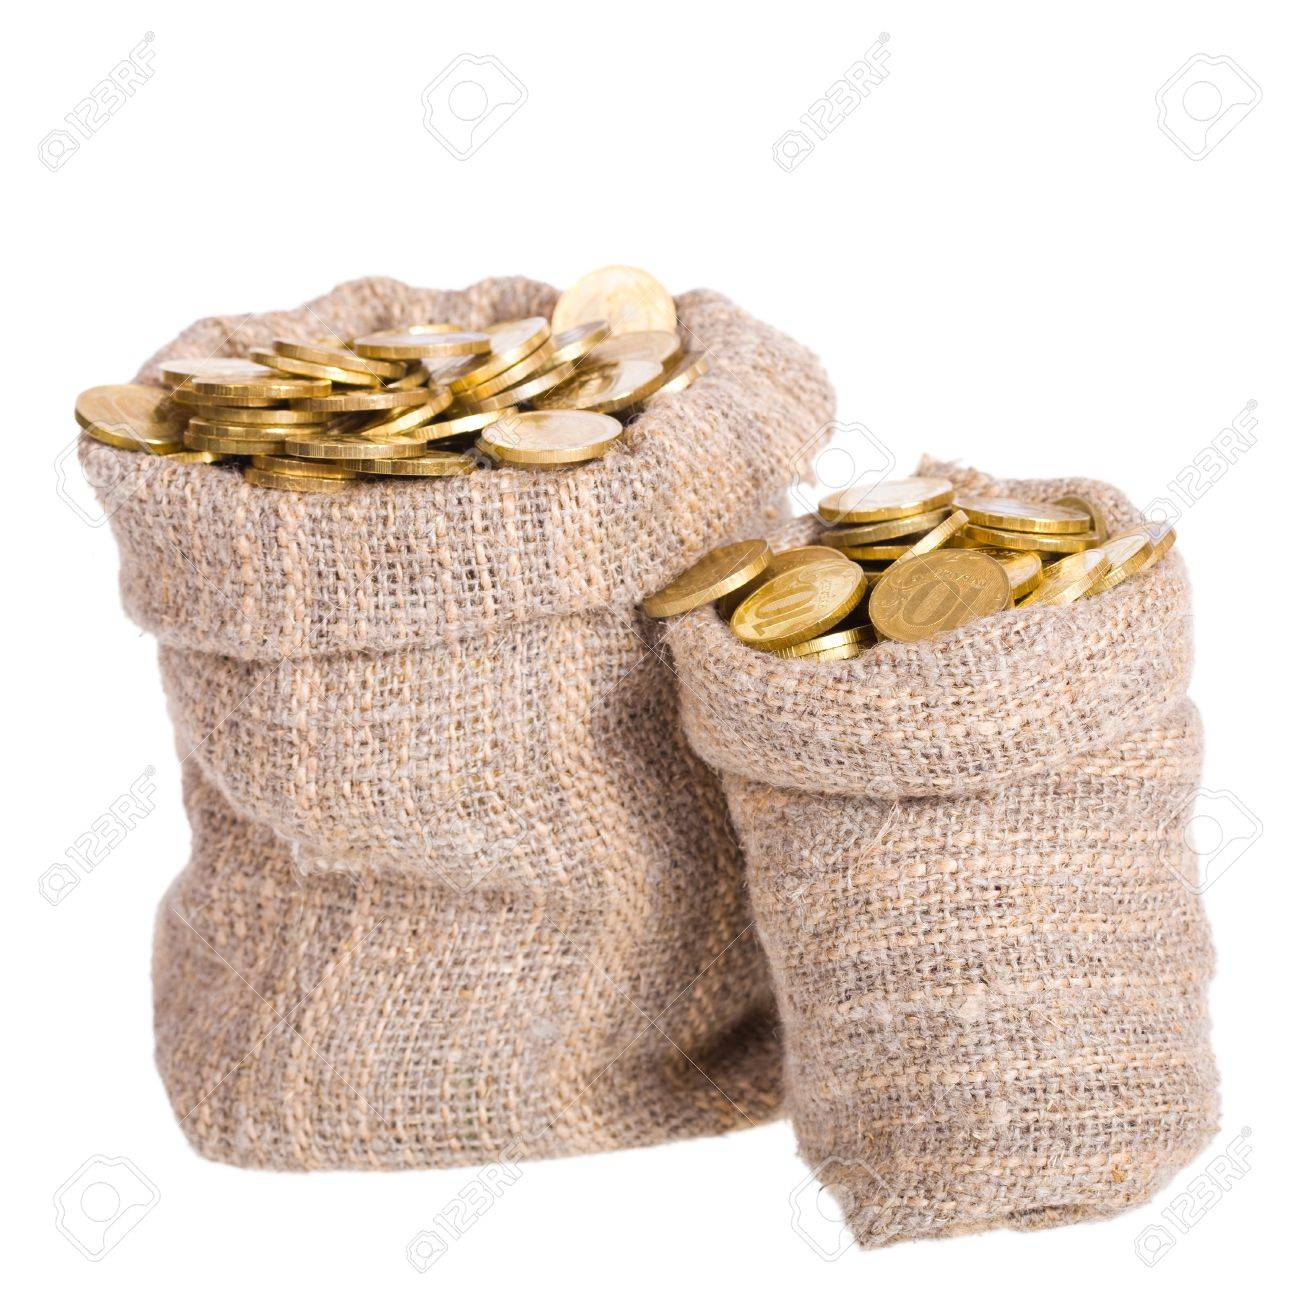 Bags filled with coins. A white background. Isolated. Stock Photo - 9139152